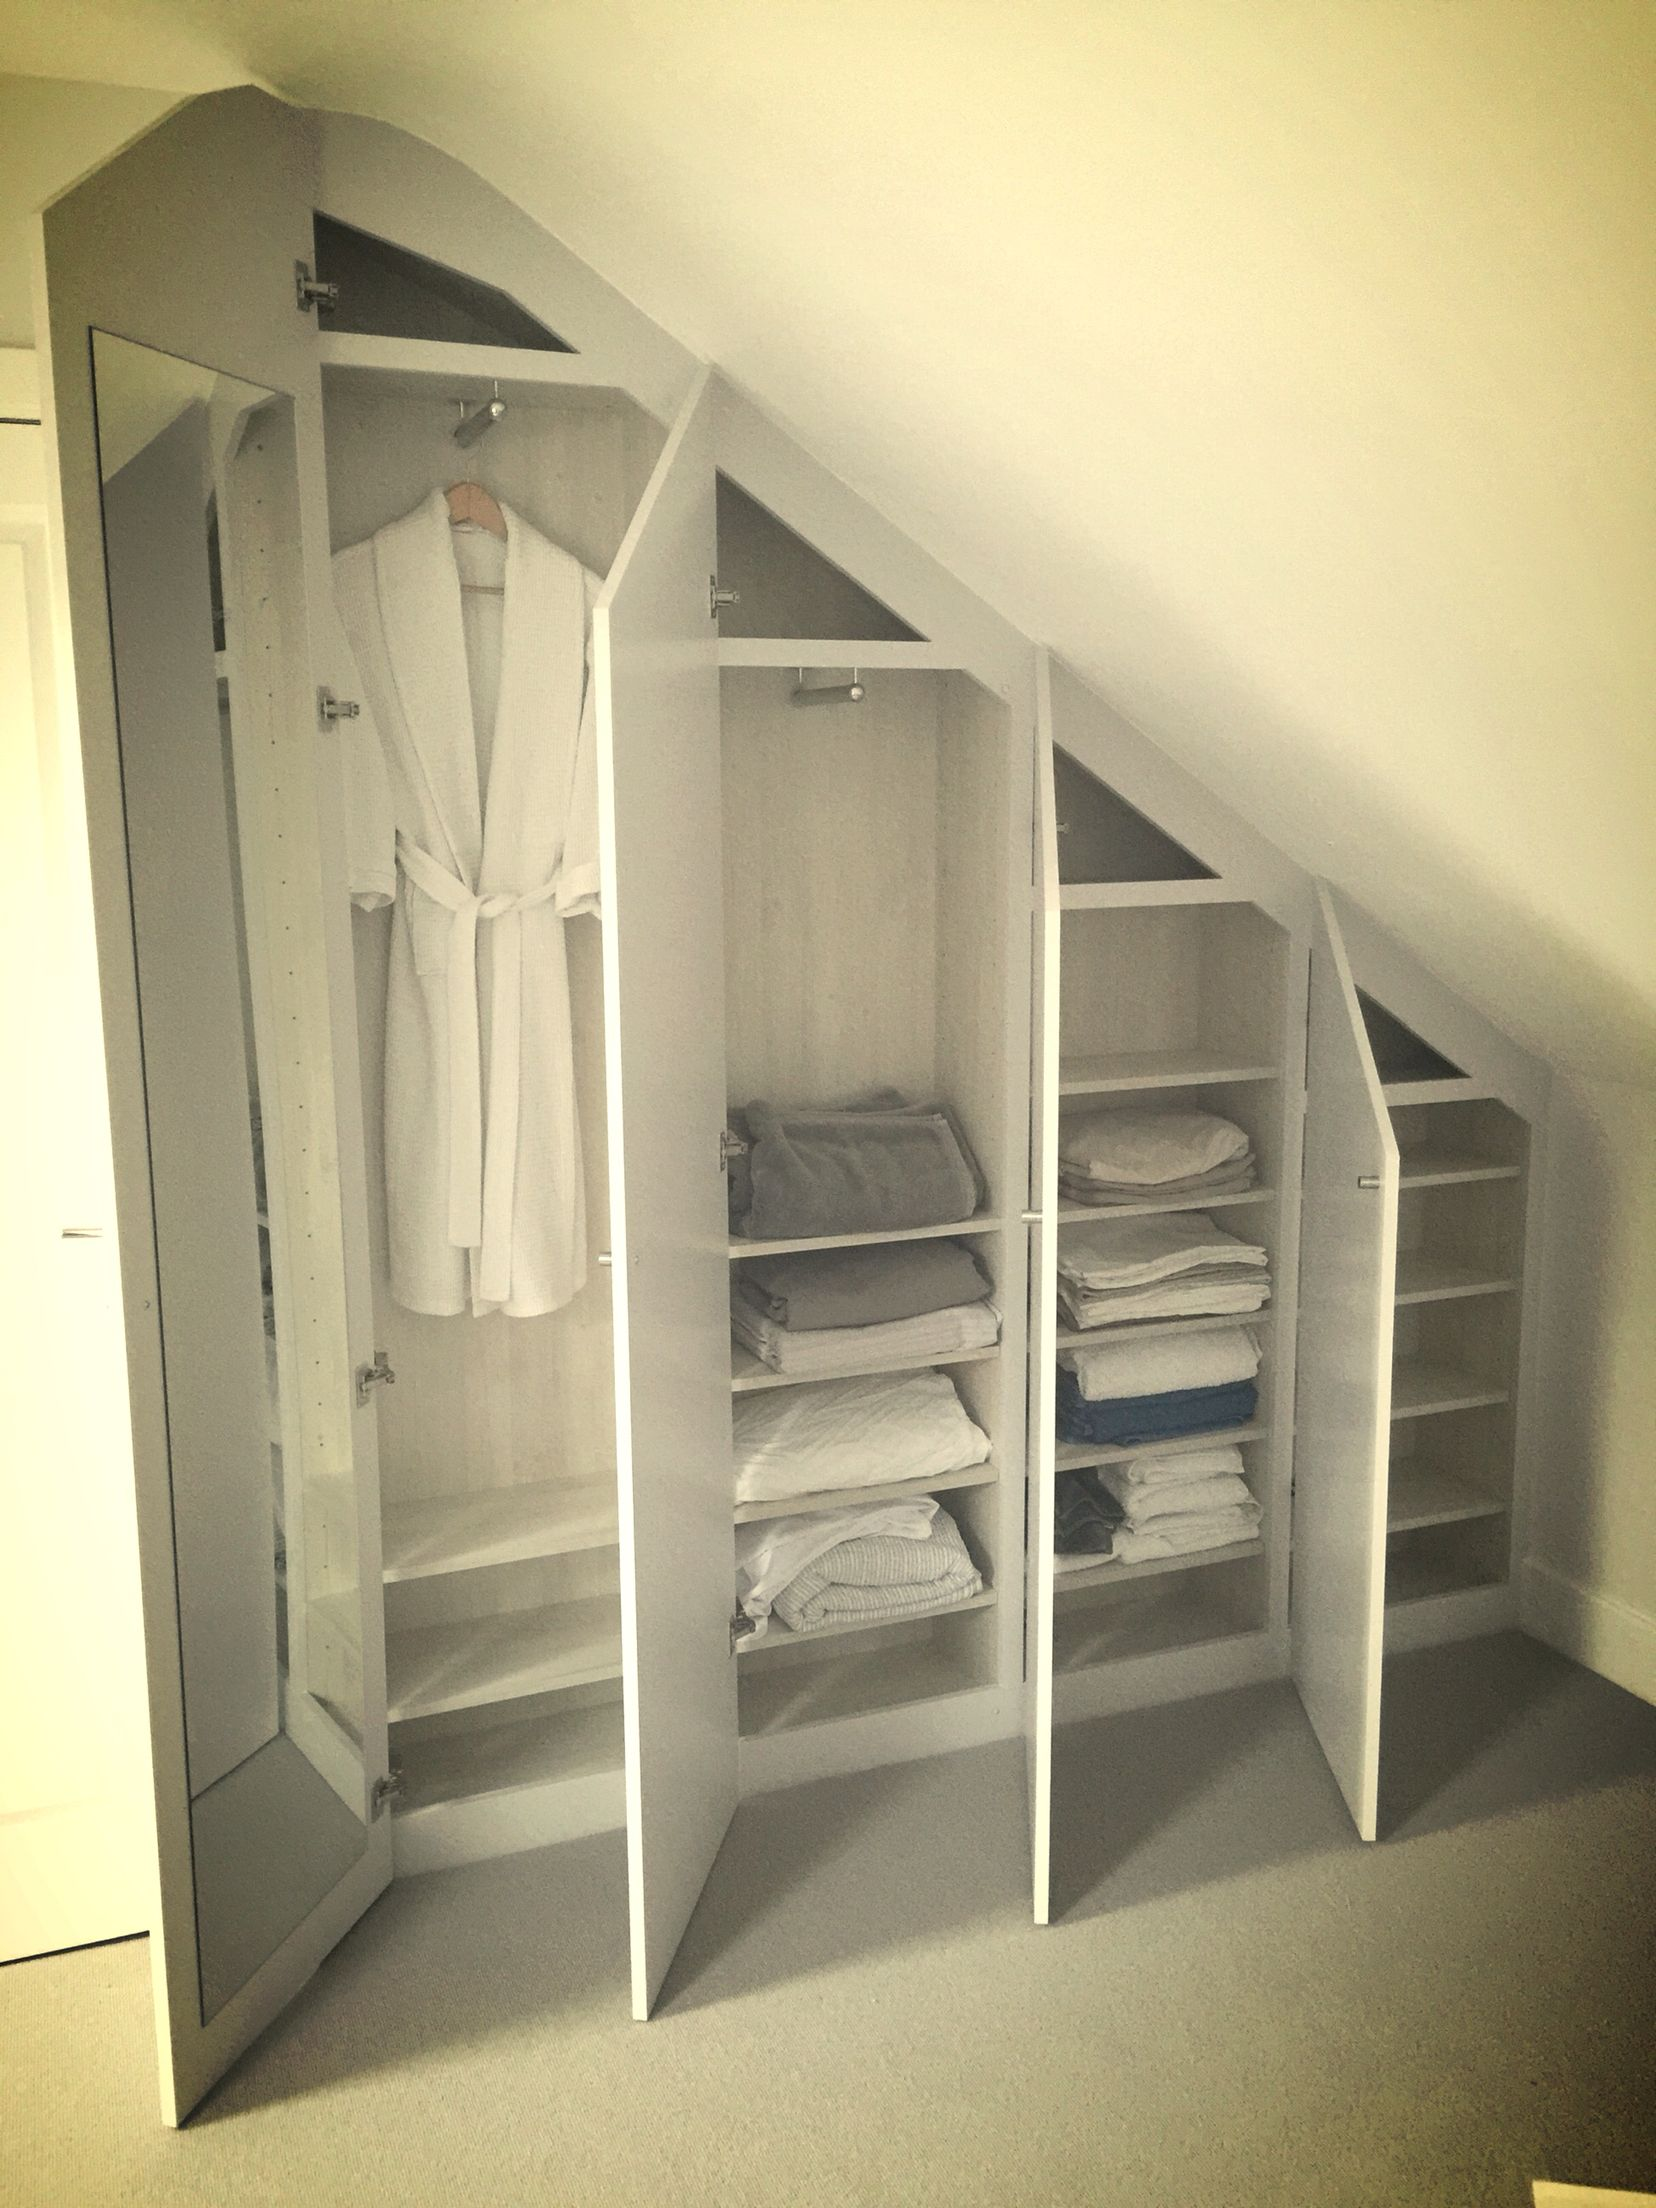 Rangement Grenier Wardrobe To Fit In Loft Conversion Placards Combles